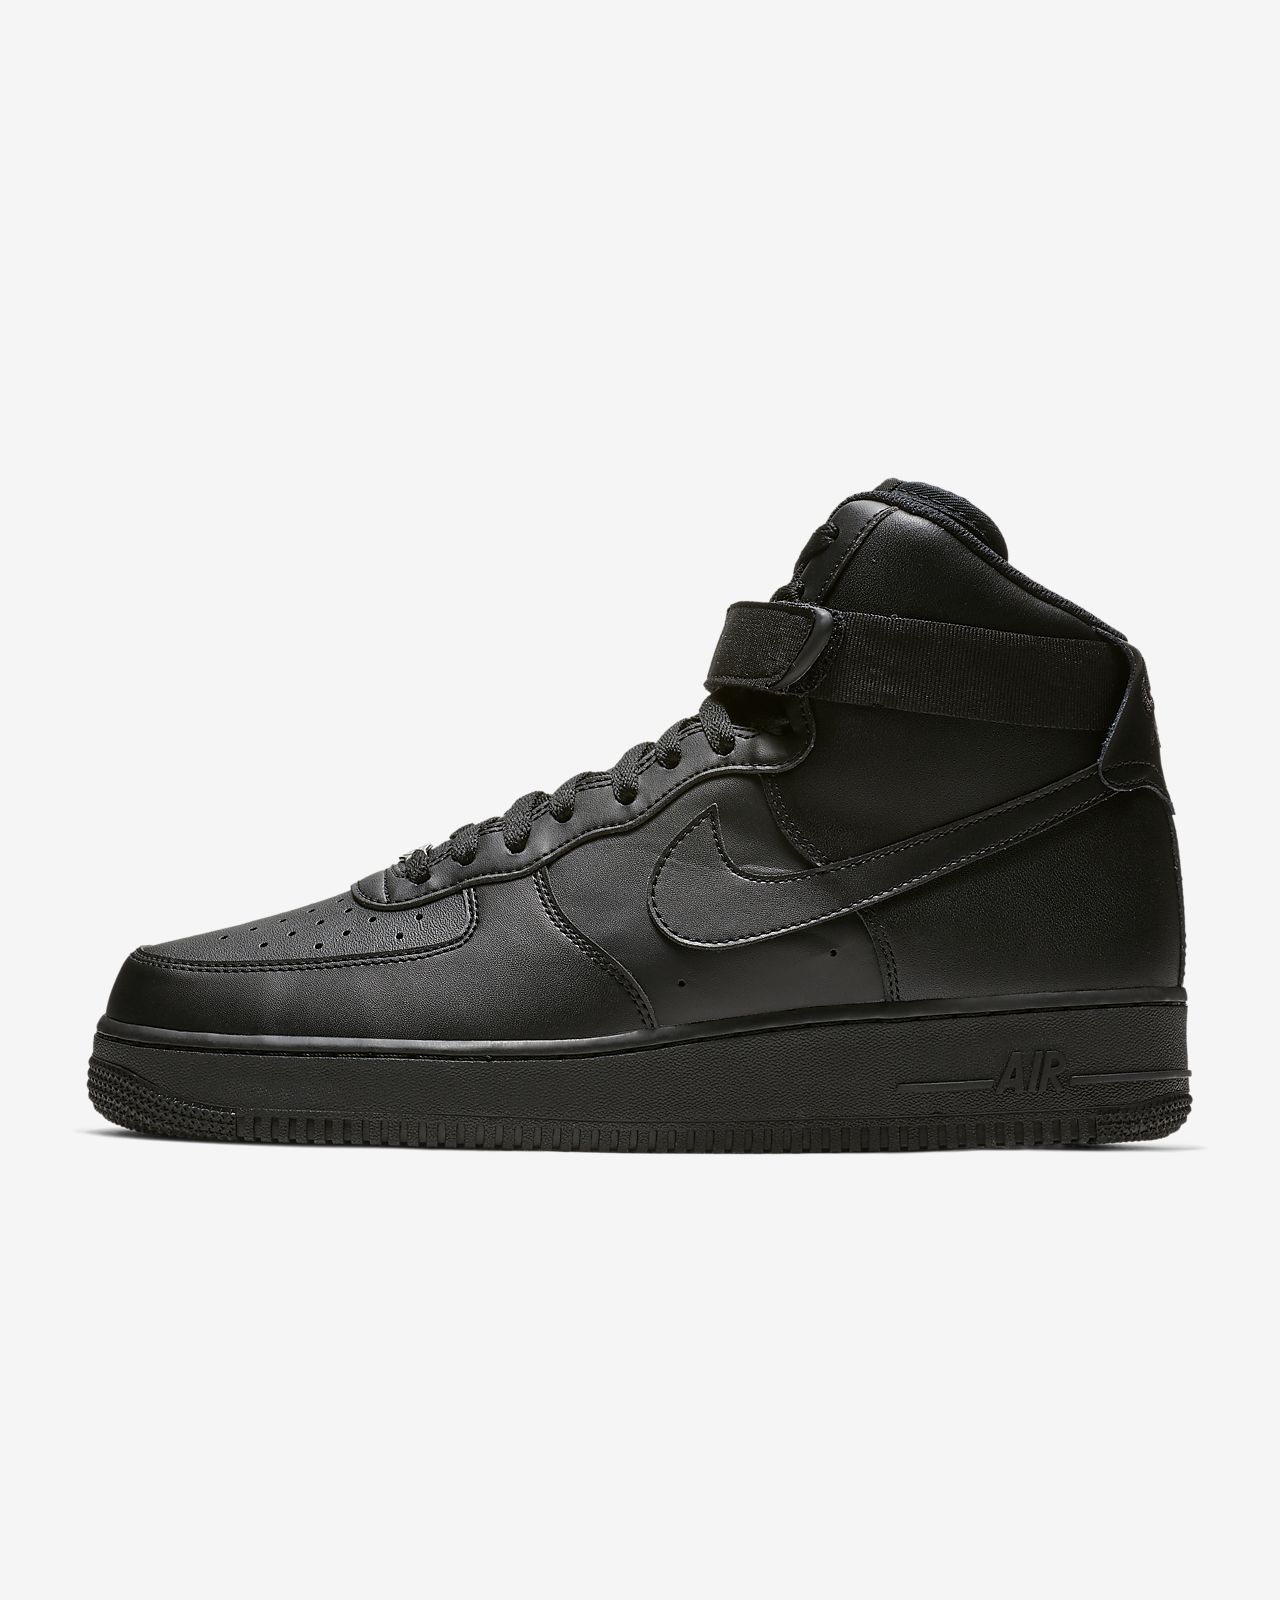 meilleur service be767 1453a Nike Air Force 1 High 07 Men's Shoe